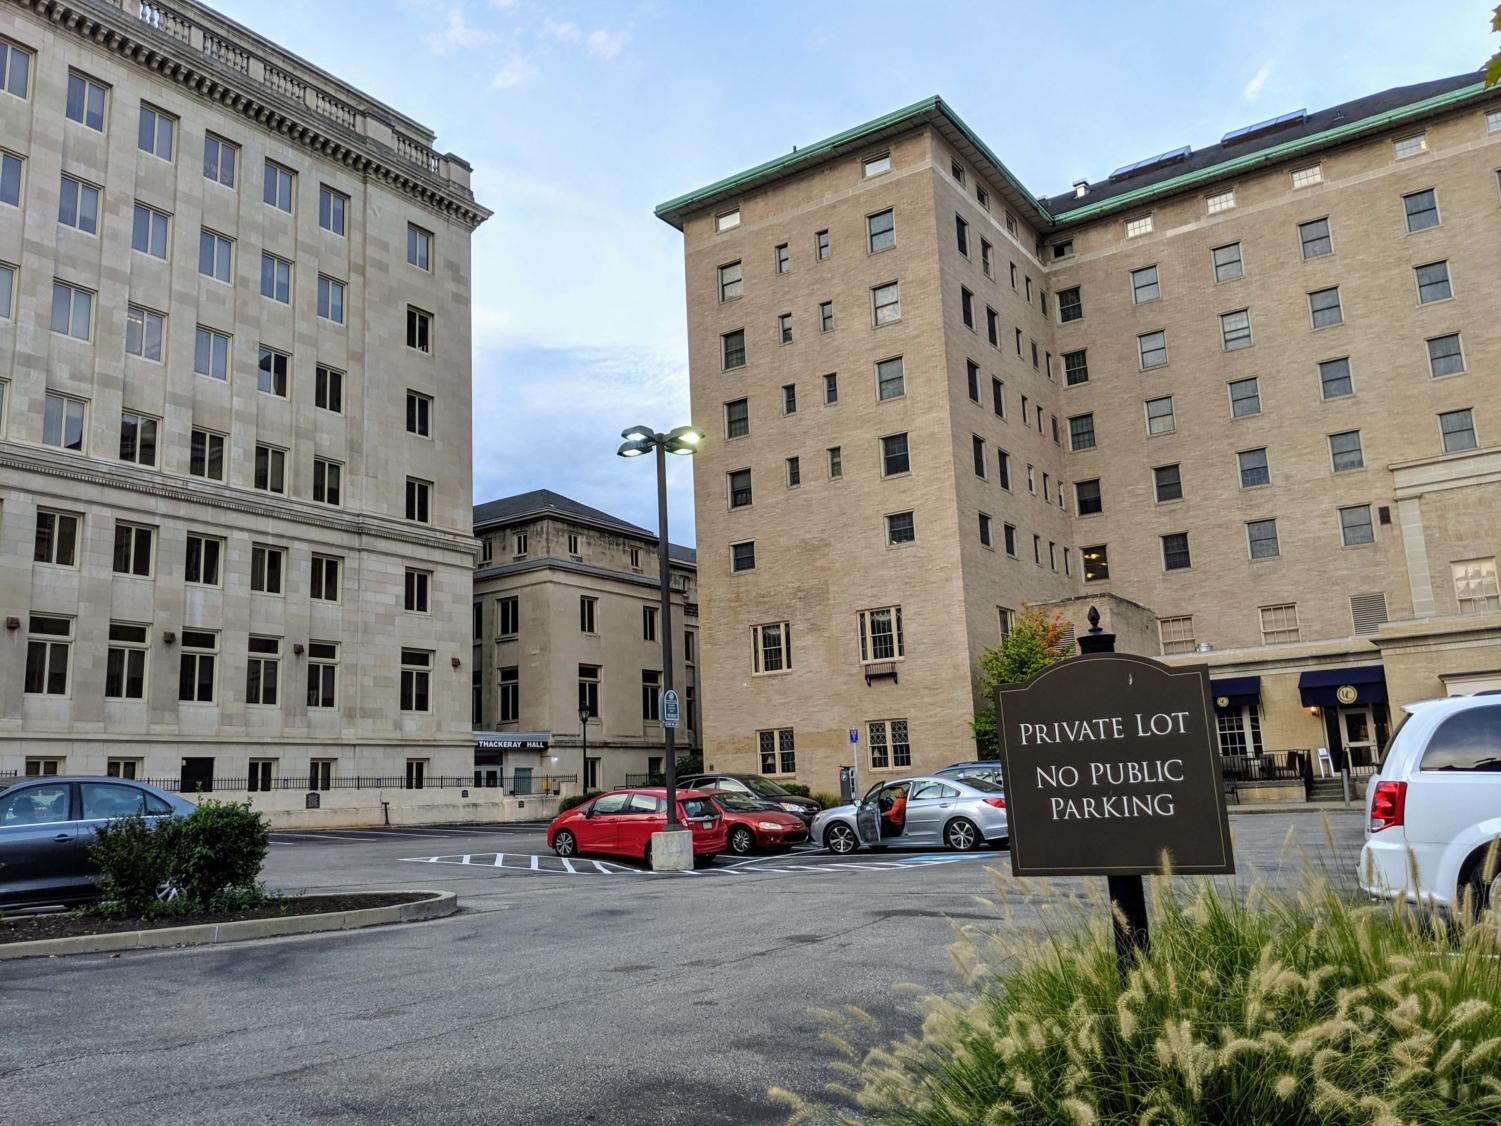 Pitt is looking to build a hotel and conference center in what is currently a parking lot next to the University Club and Thackeray Hall.